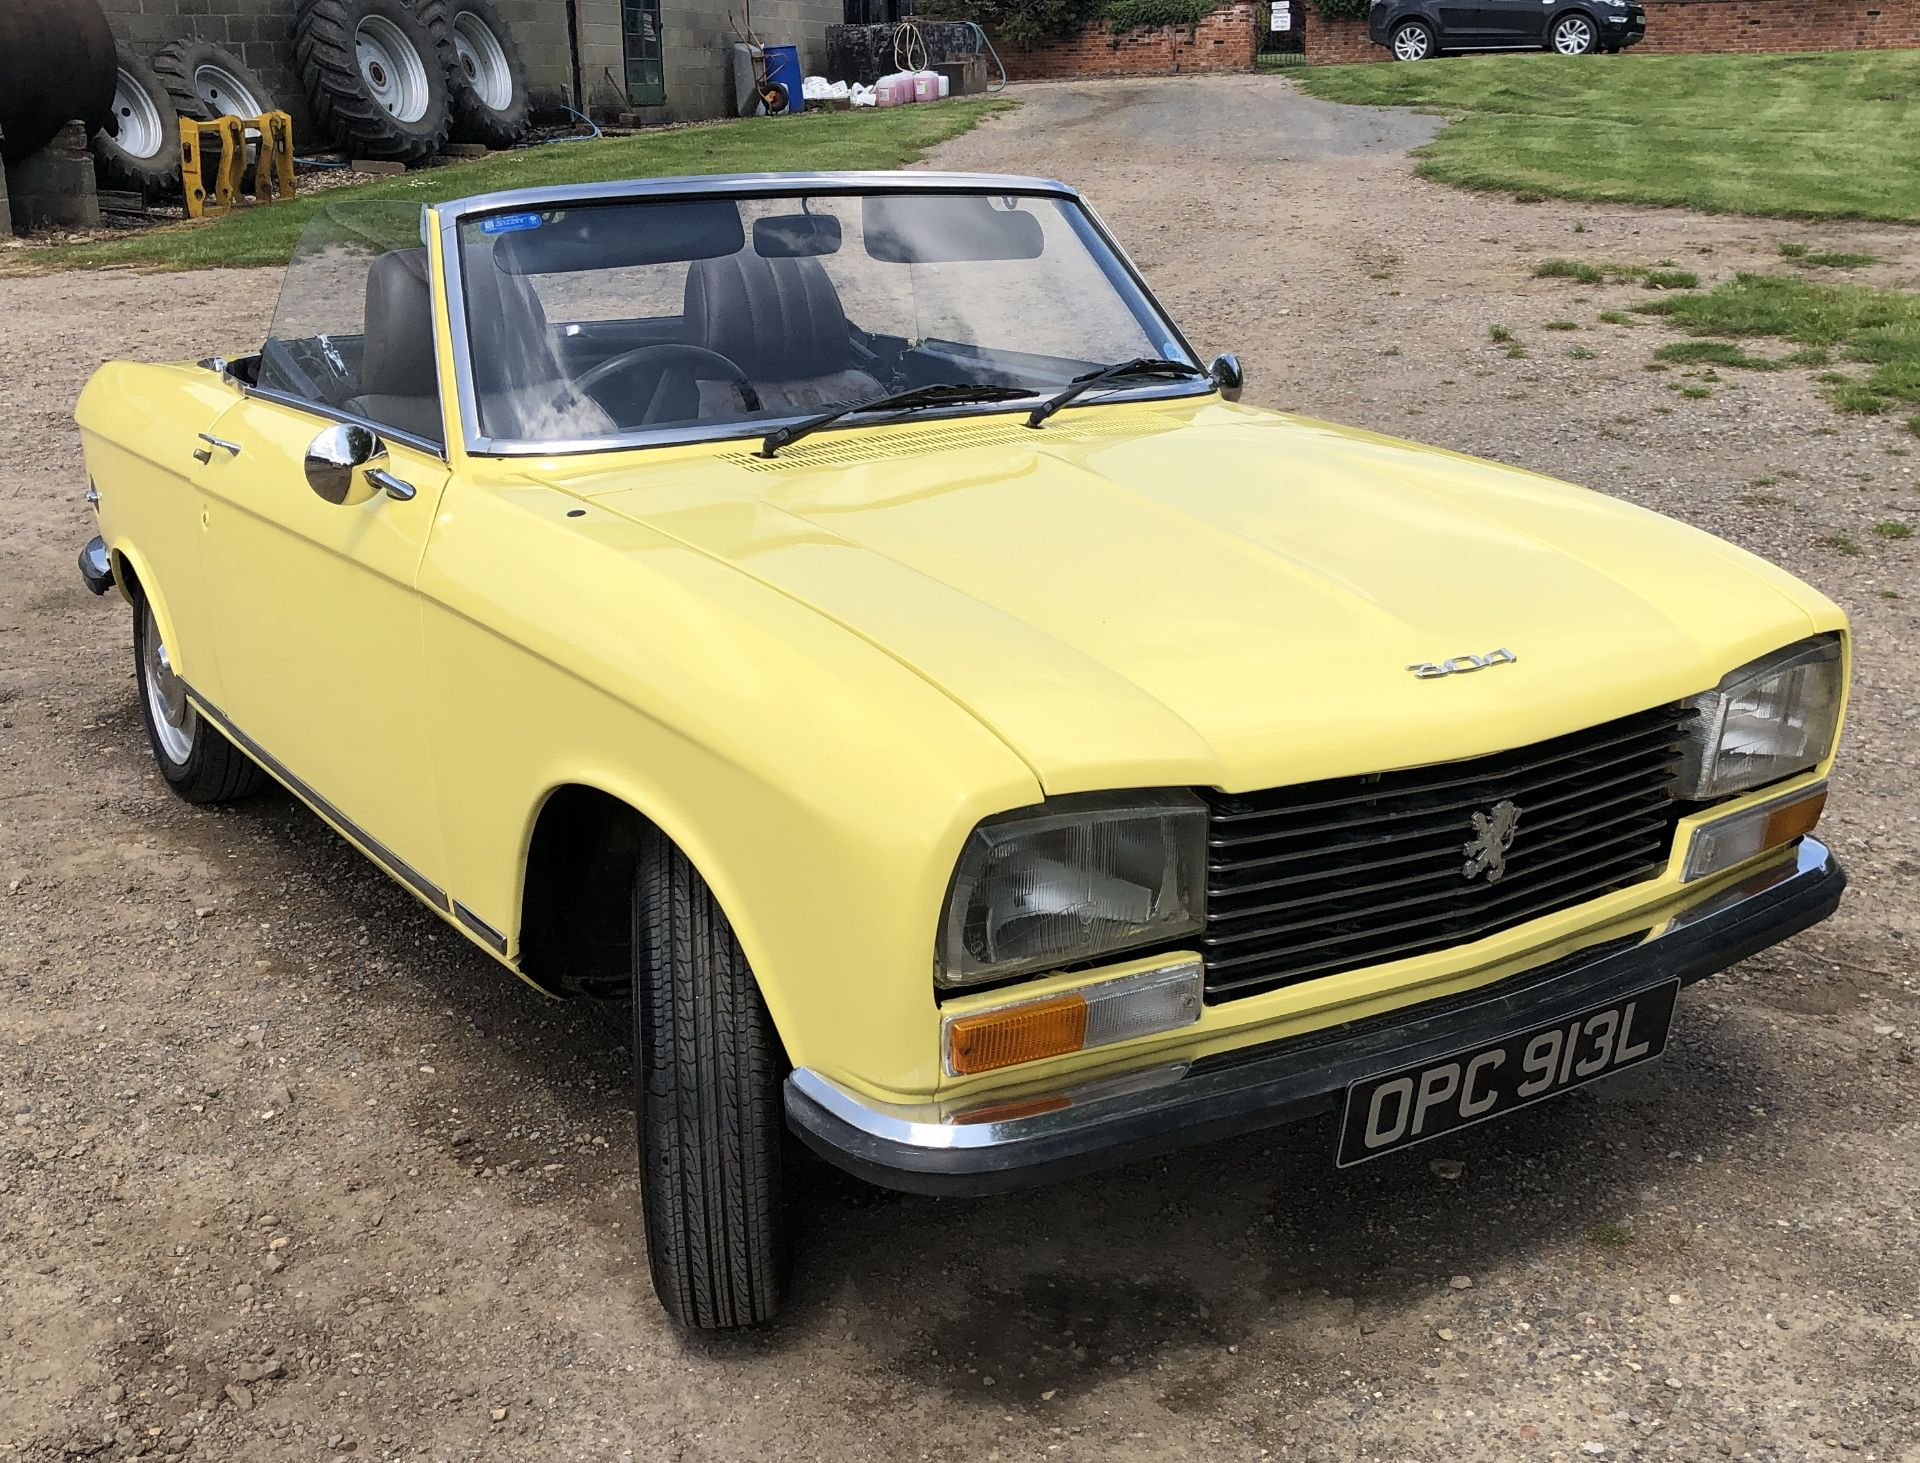 Rare Right Hand Drive Peugeot 304 Convertible, Registration OPC 913L, First Registered 2nd - Image 15 of 48